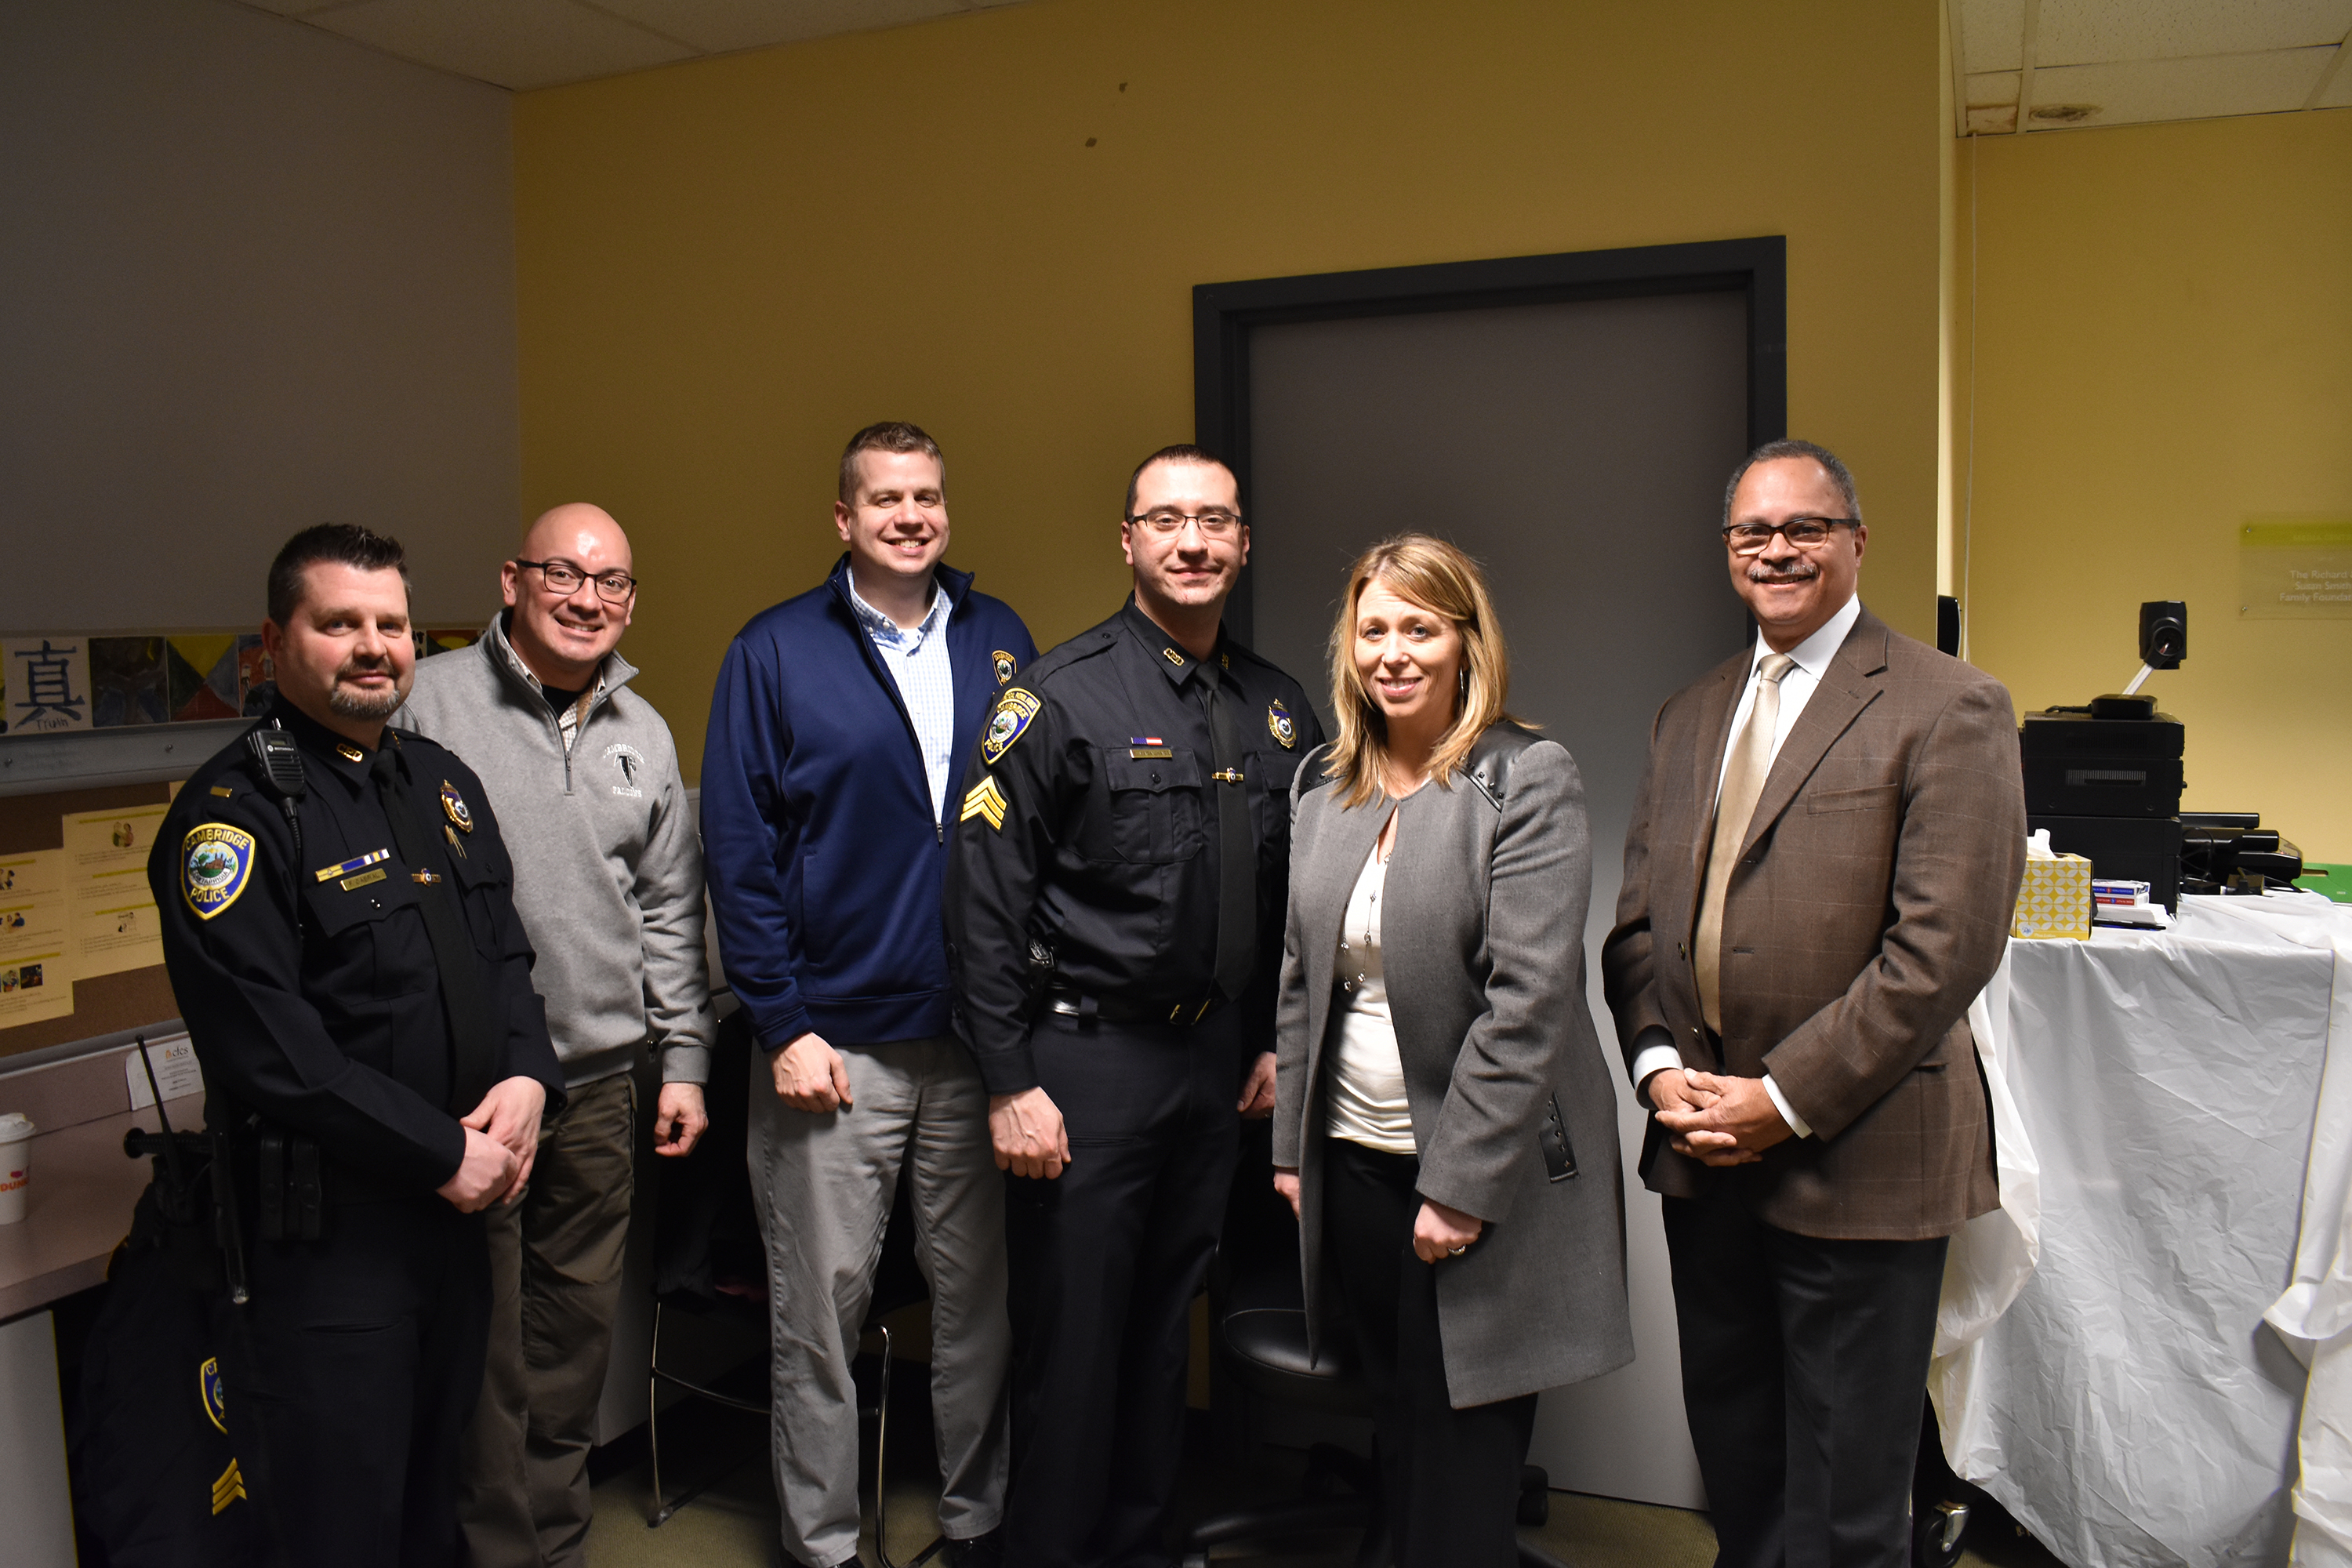 Training with Local Police Departments Makes Communities Safer for People with Disabilities